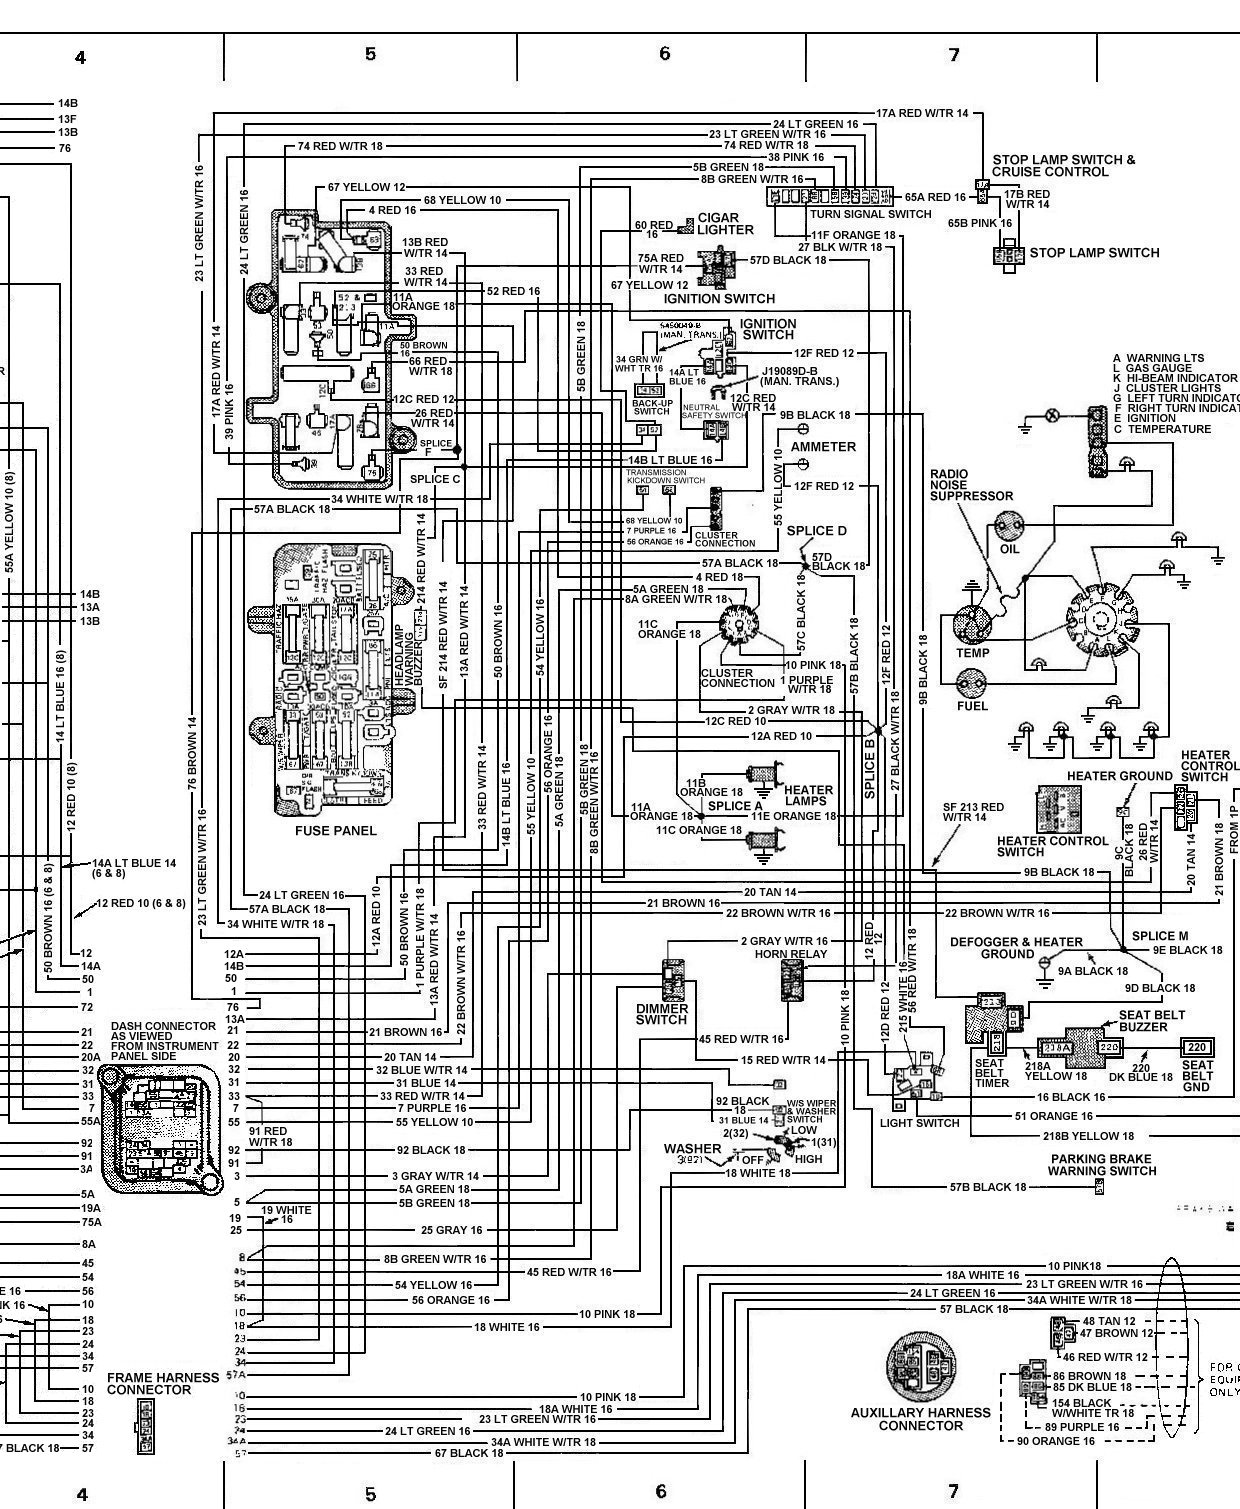 1g dsm ecu wiring diagram qFluSrO 1g dsm ecu wiring diagram image details 1g dsm fuel pump wiring diagram at soozxer.org